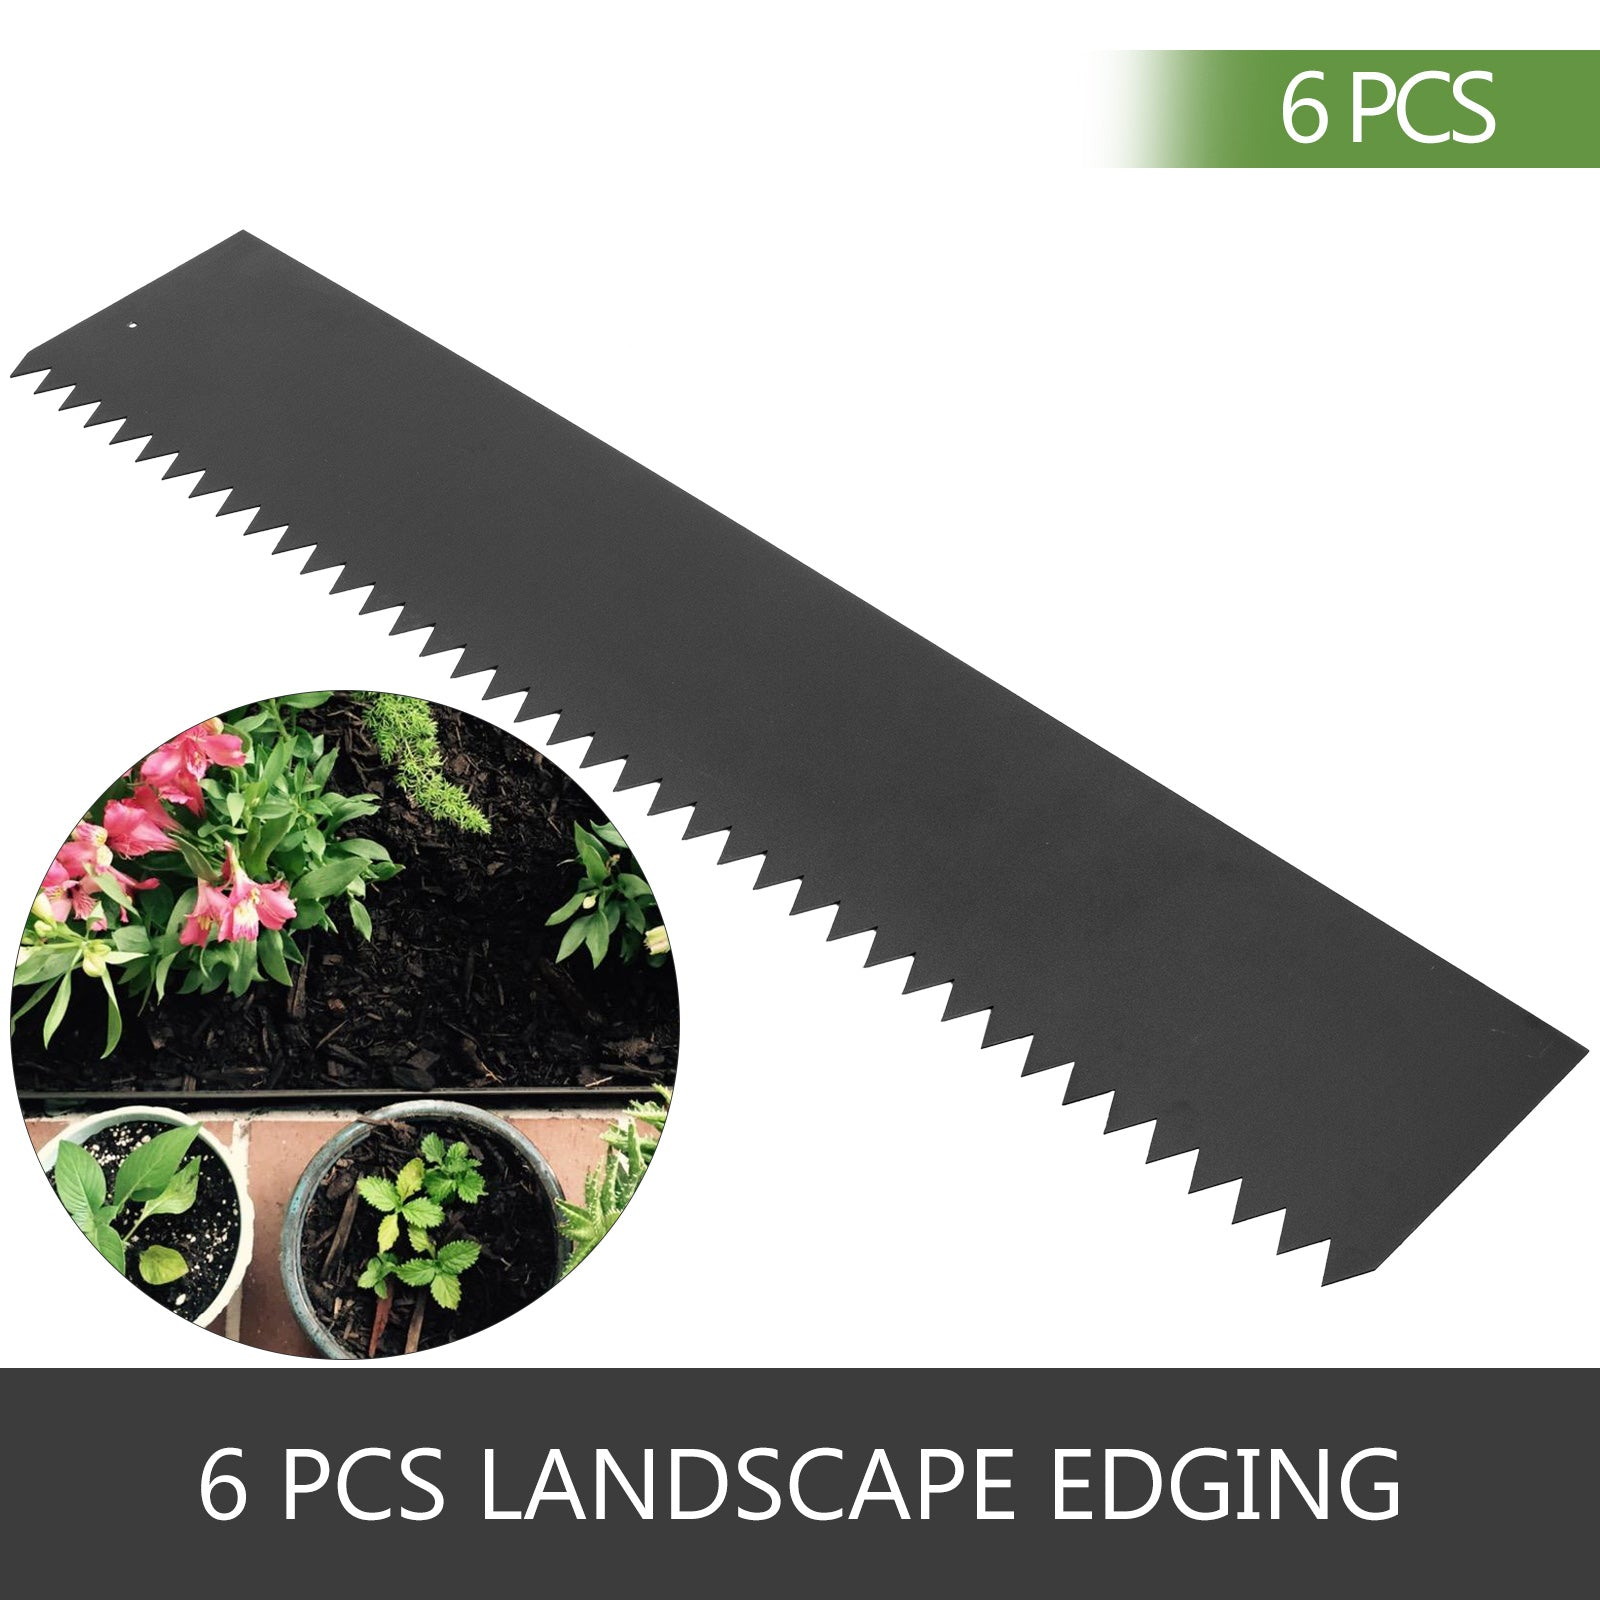 6pcs Steel Landscape Edging Steel Edging Landscaping 40 X 6 Inch Lawn Edging